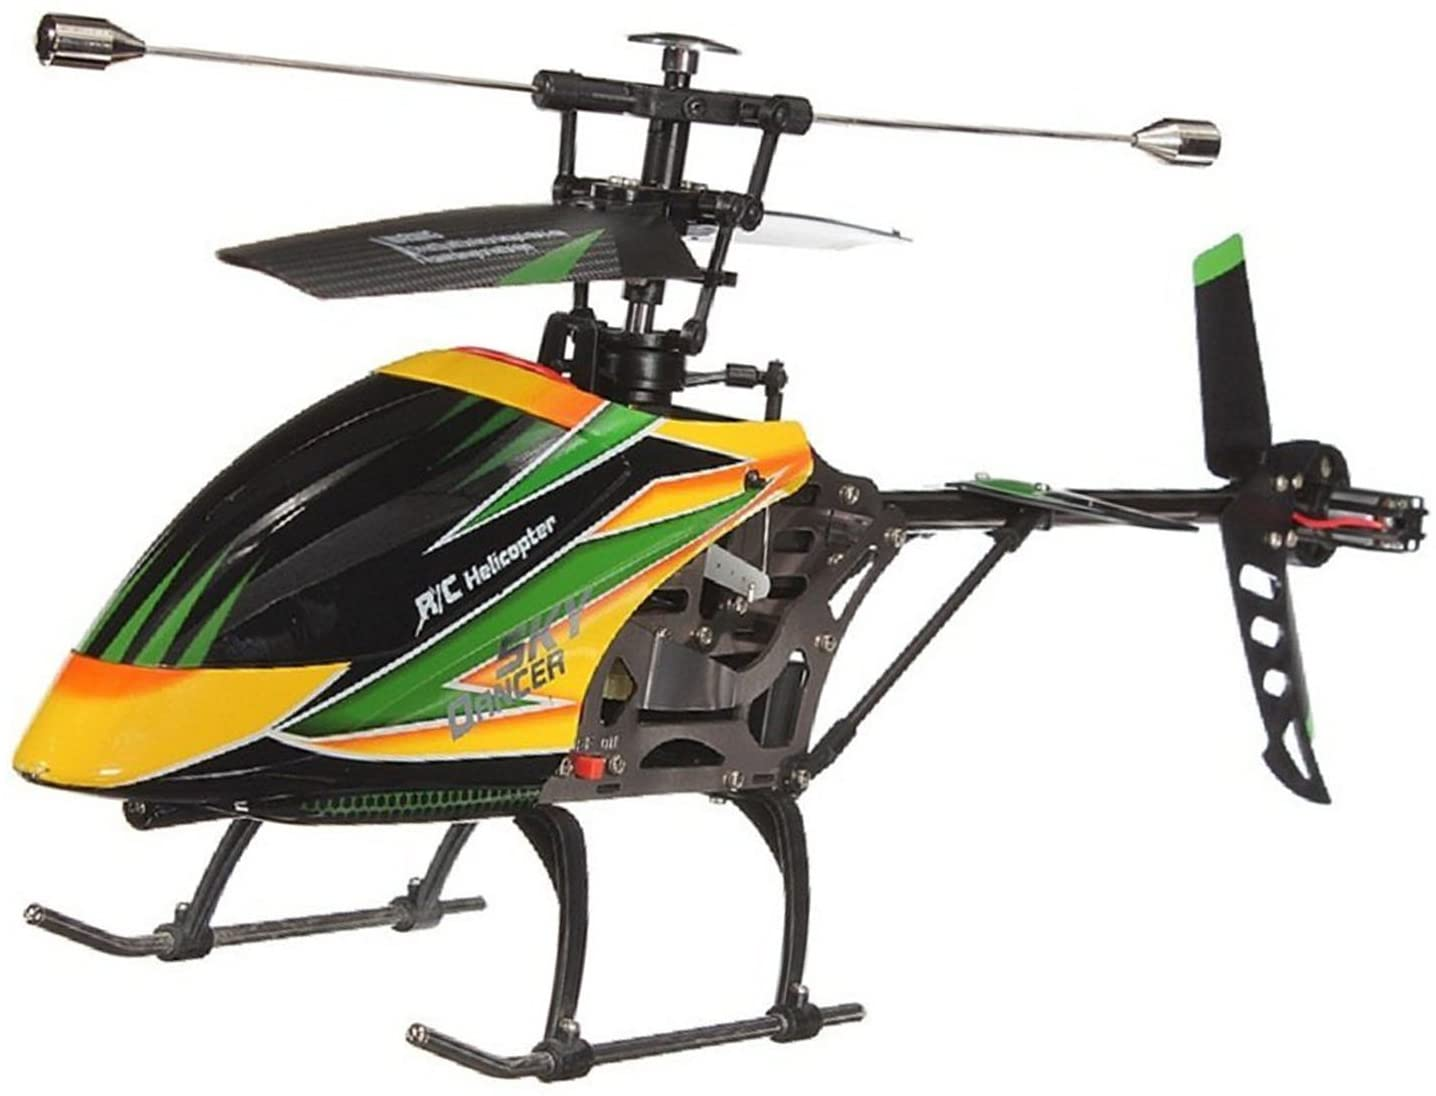 NiGHT LiONS TECH® Remote Control RC Helicopter